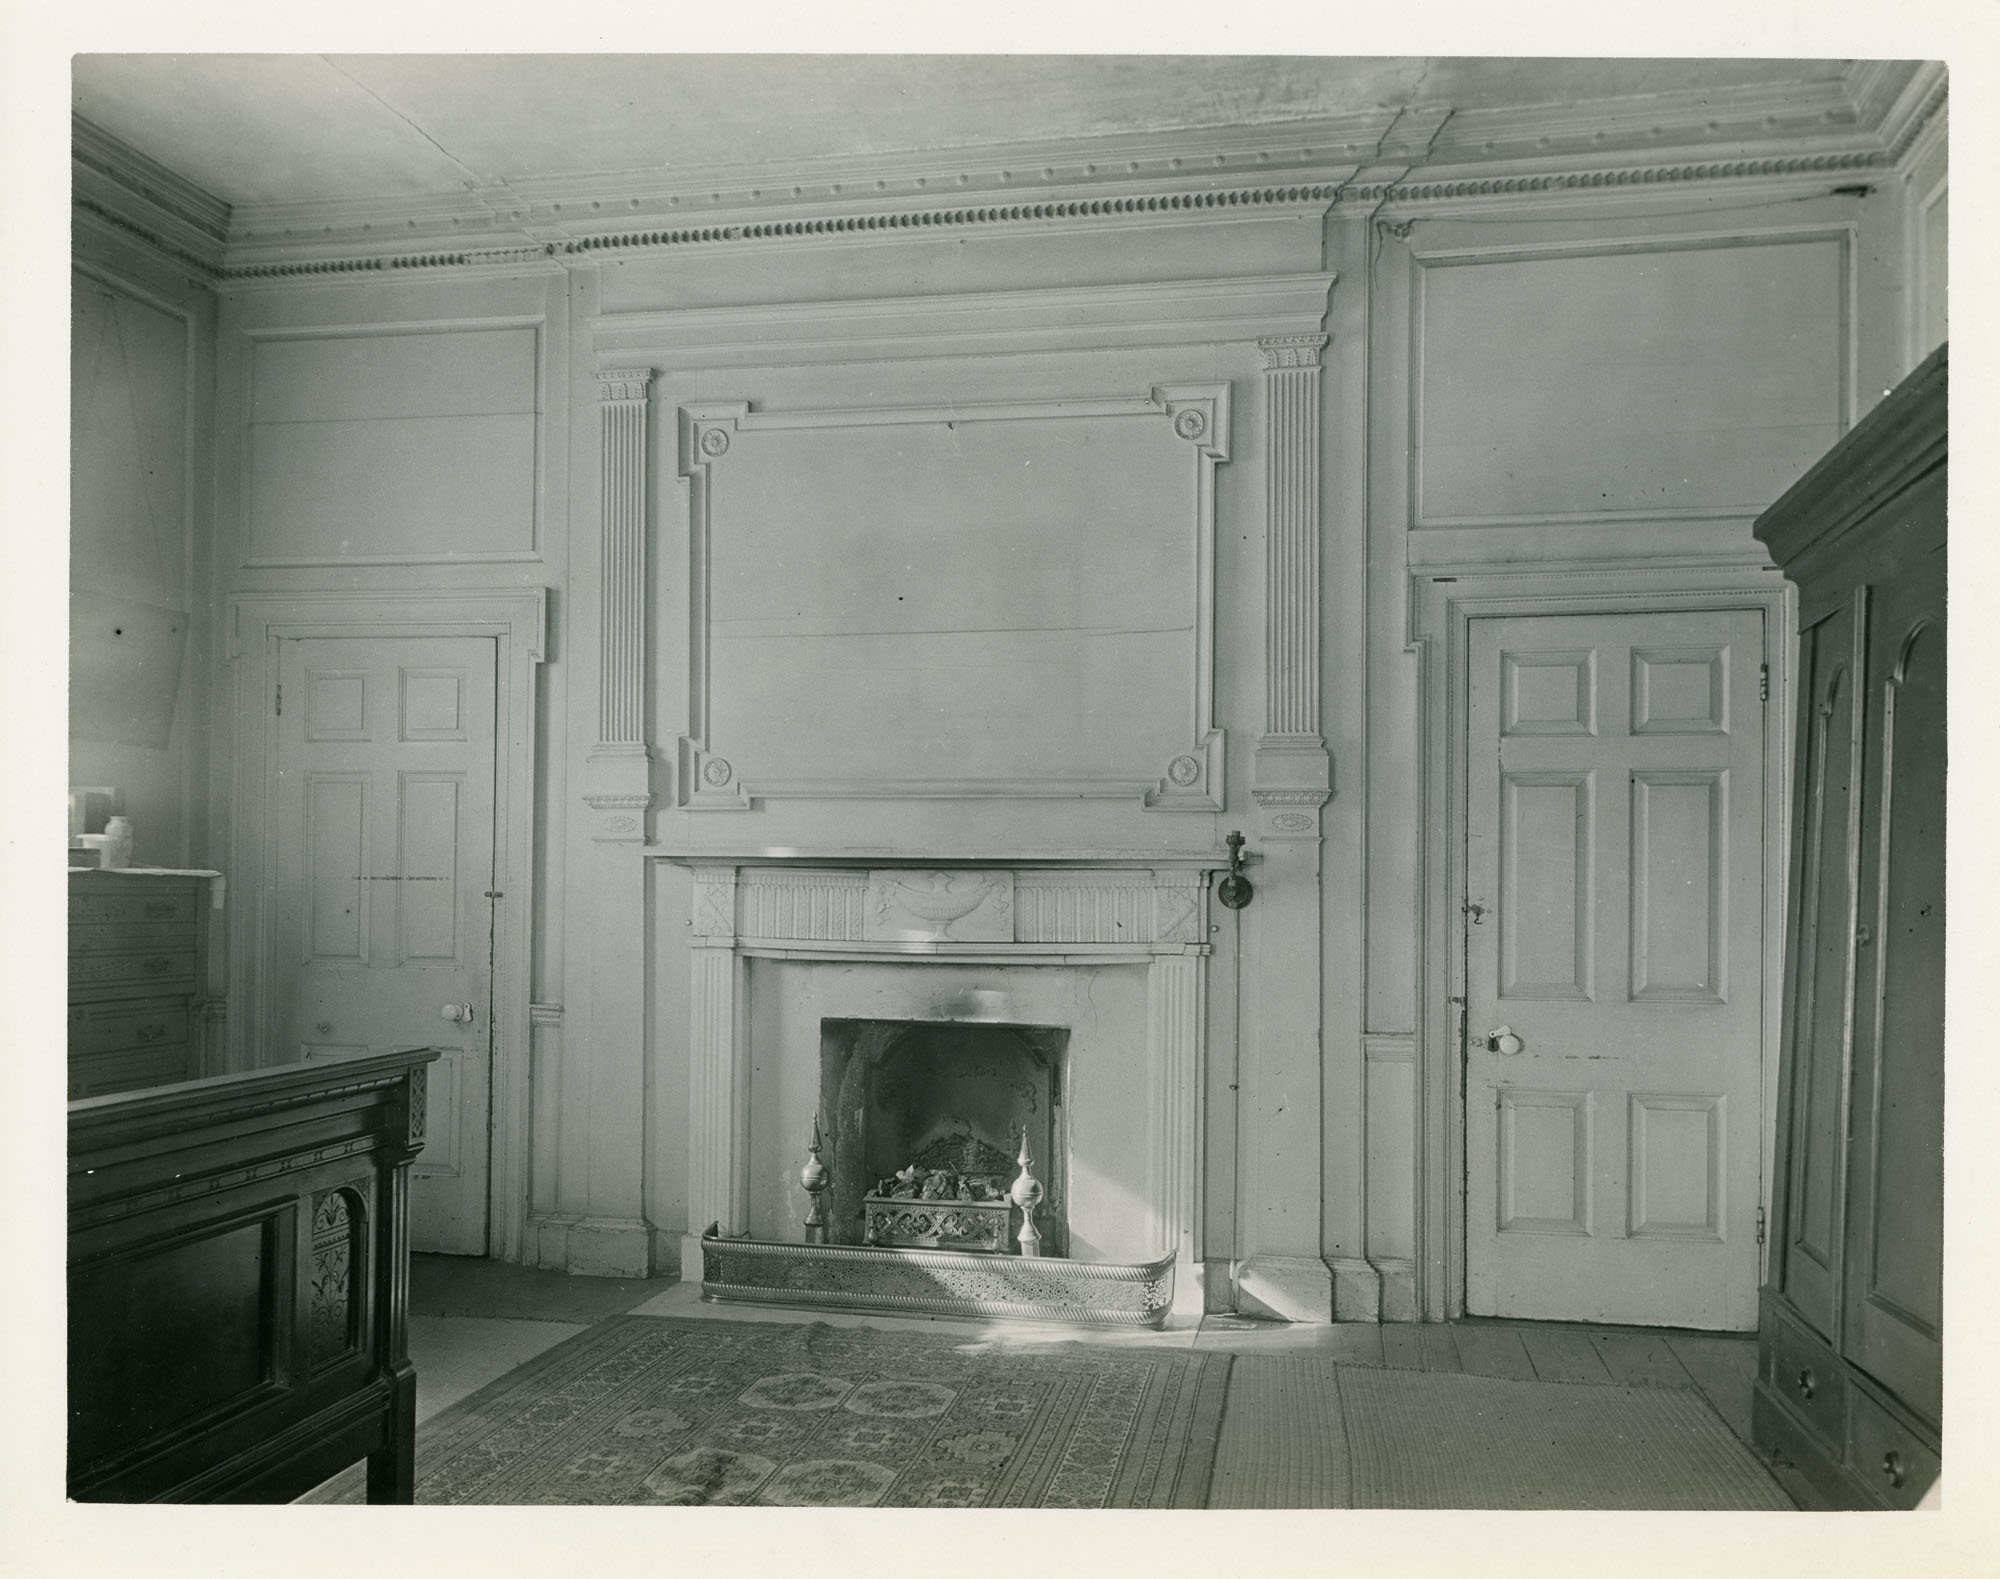 William Gibbes House, East Wall, Southwest Room, Second Floor